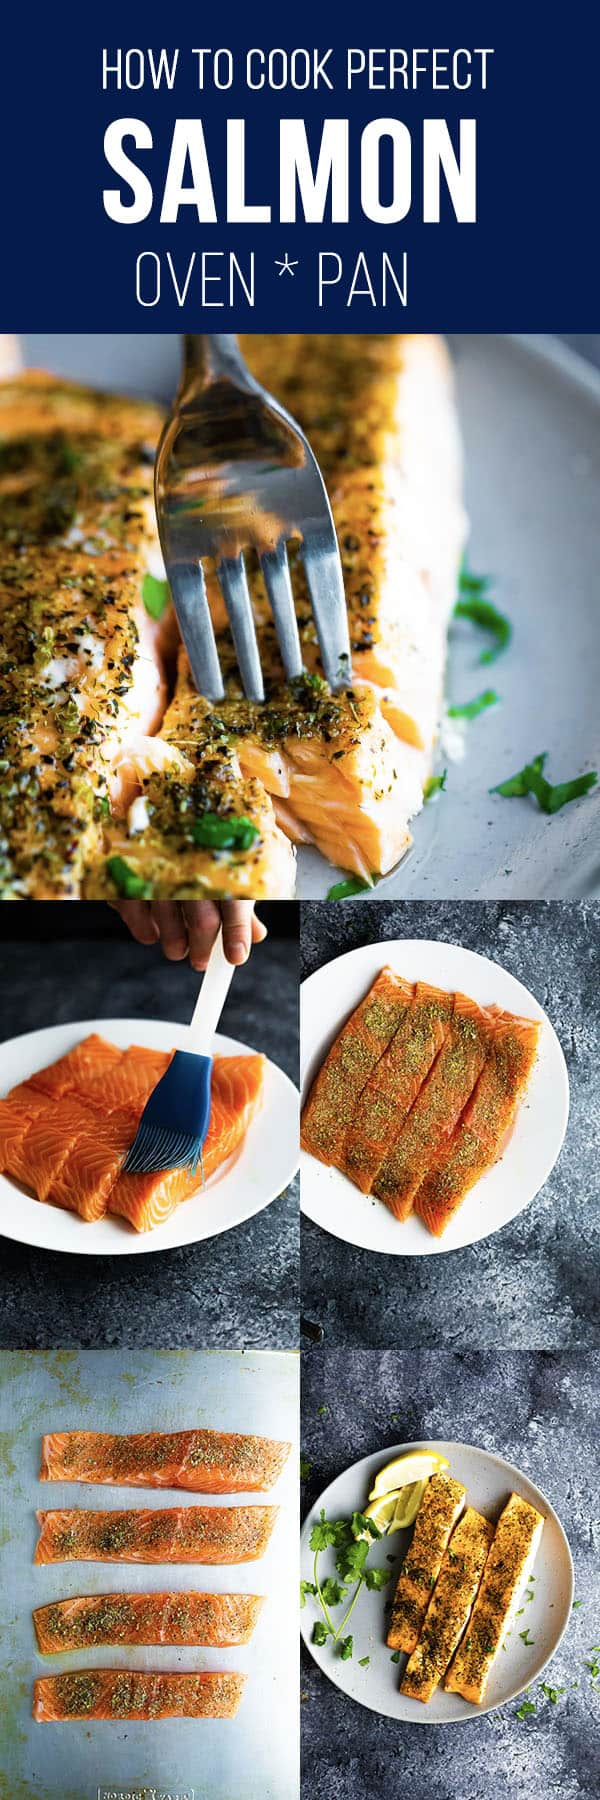 How to cook salmon- showing you two EASY ways to get perfect, tender salmon every time! No more dry, overcooked salmon! #sweetpeasandsaffron #salmon